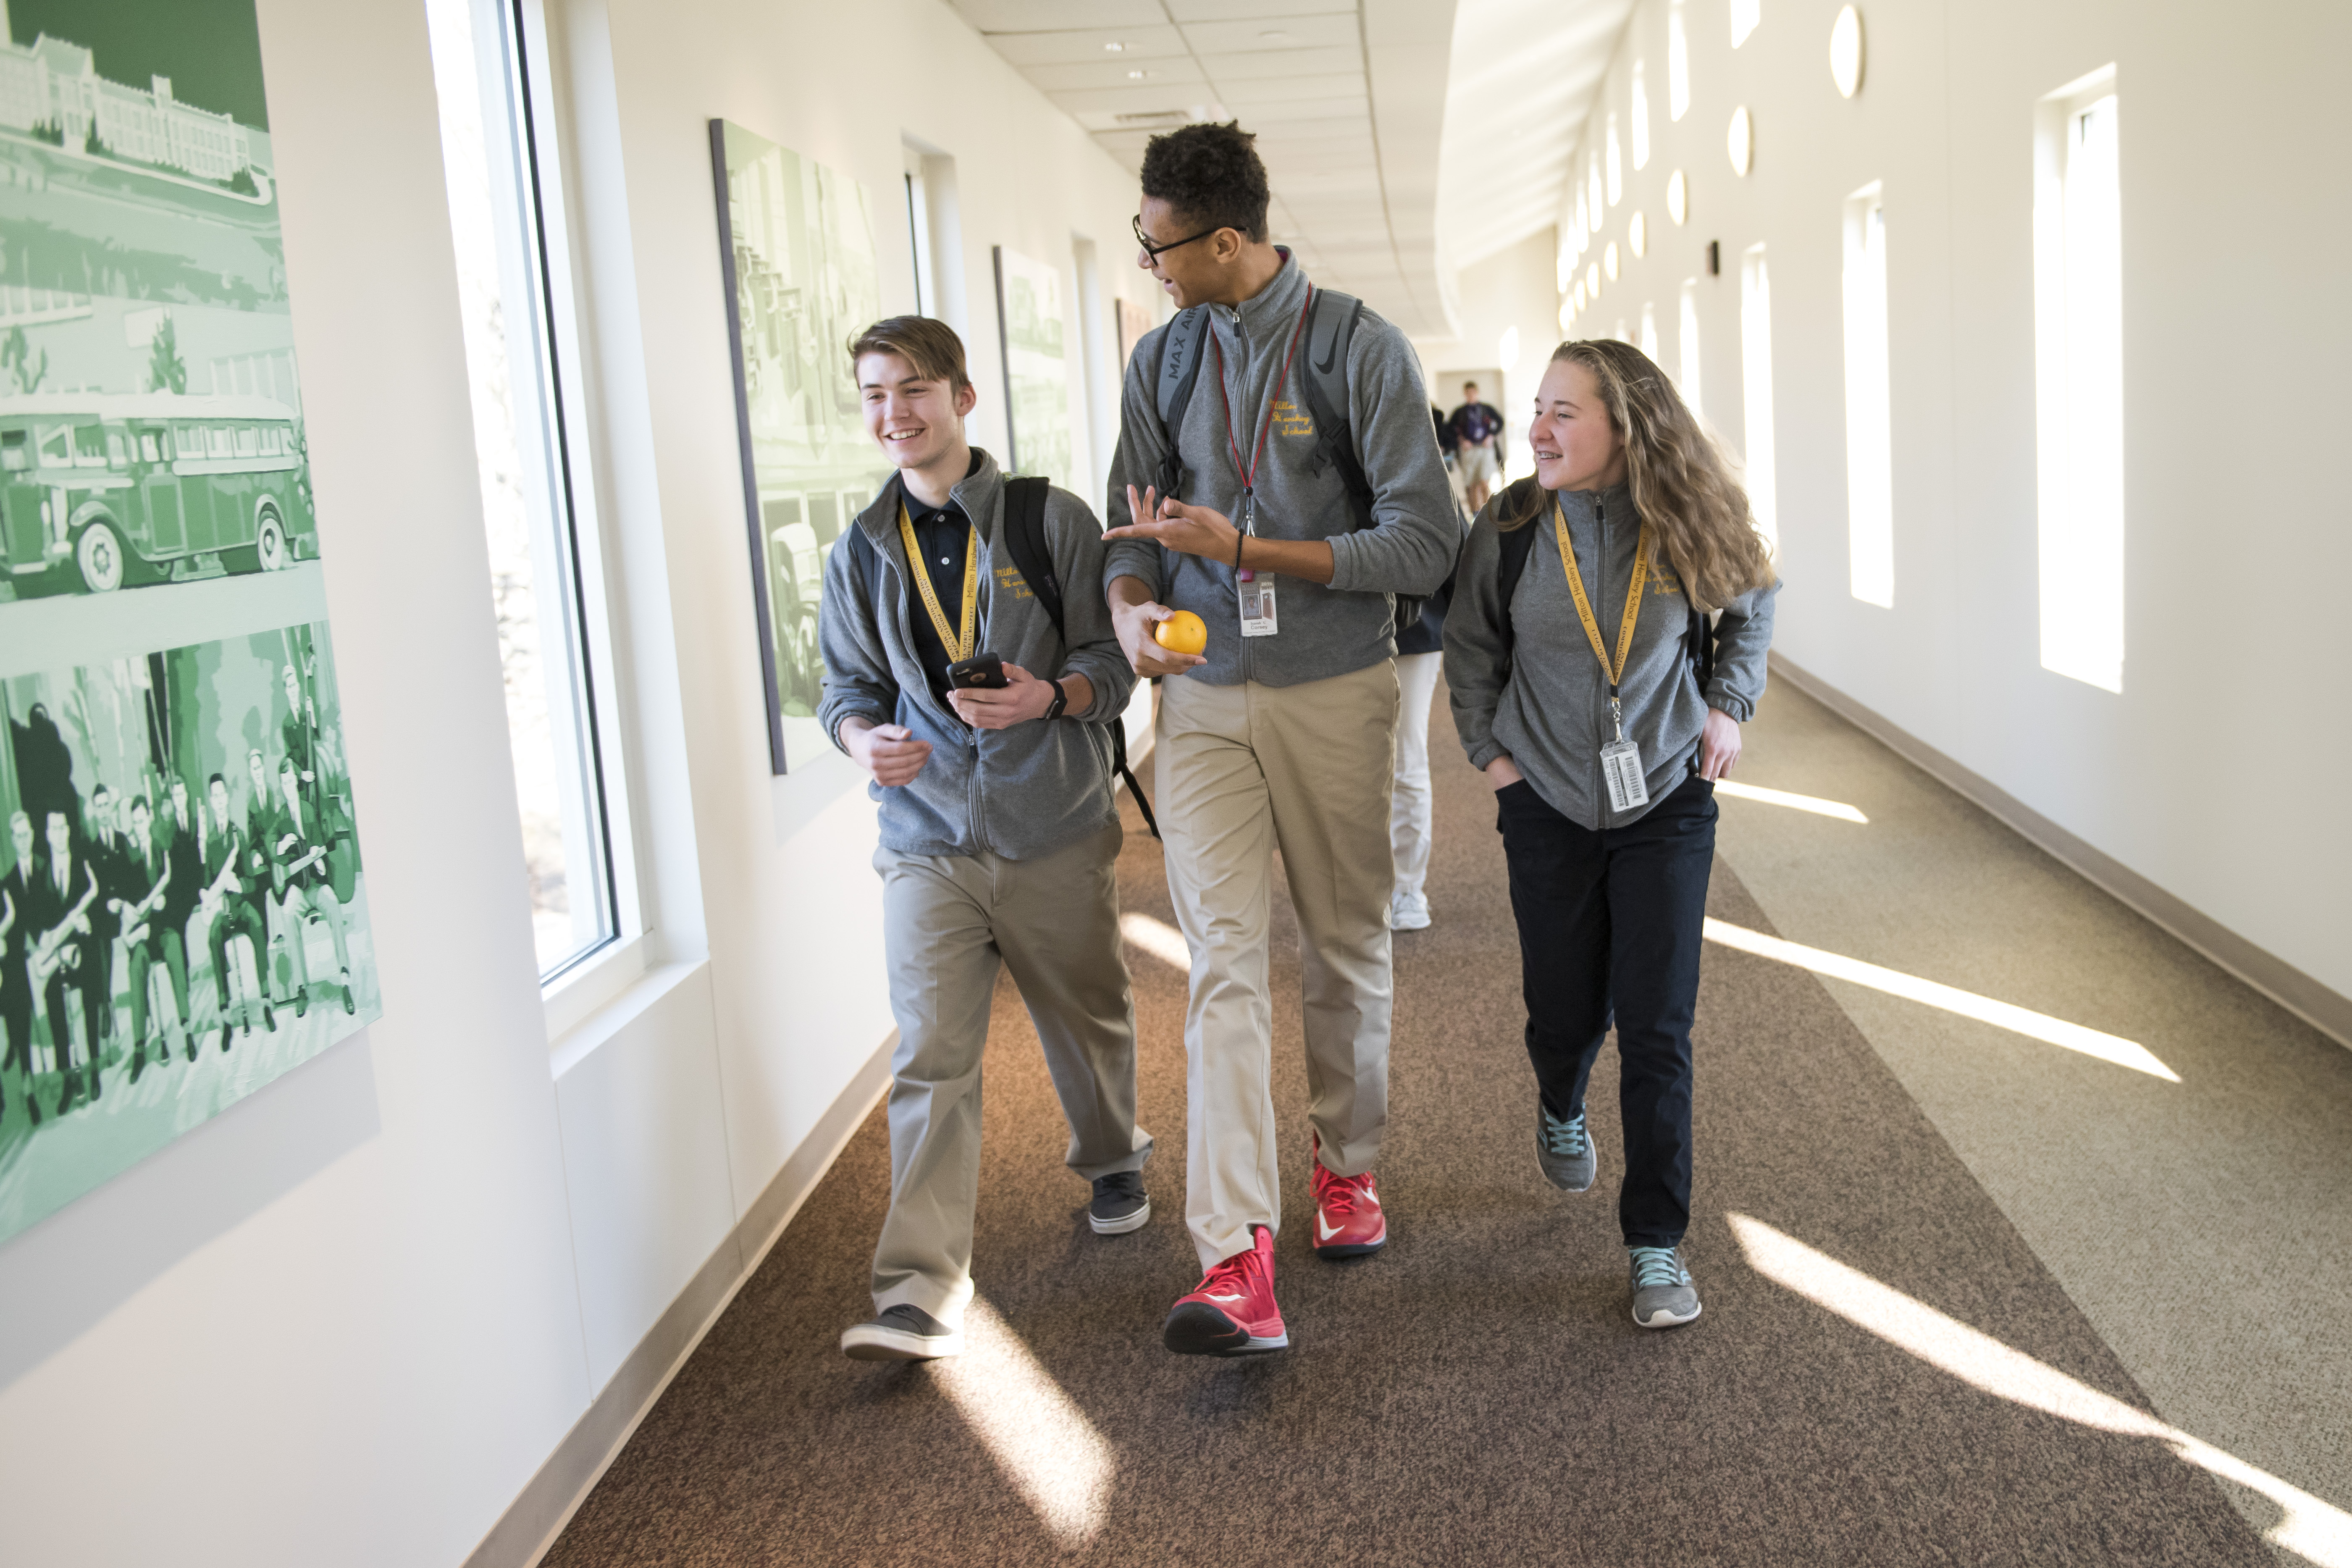 The Transitional Living program at Milton Hershey School was developed for all high school seniors. Through an independent living environment, they develop essential life skills during their last year of high school.